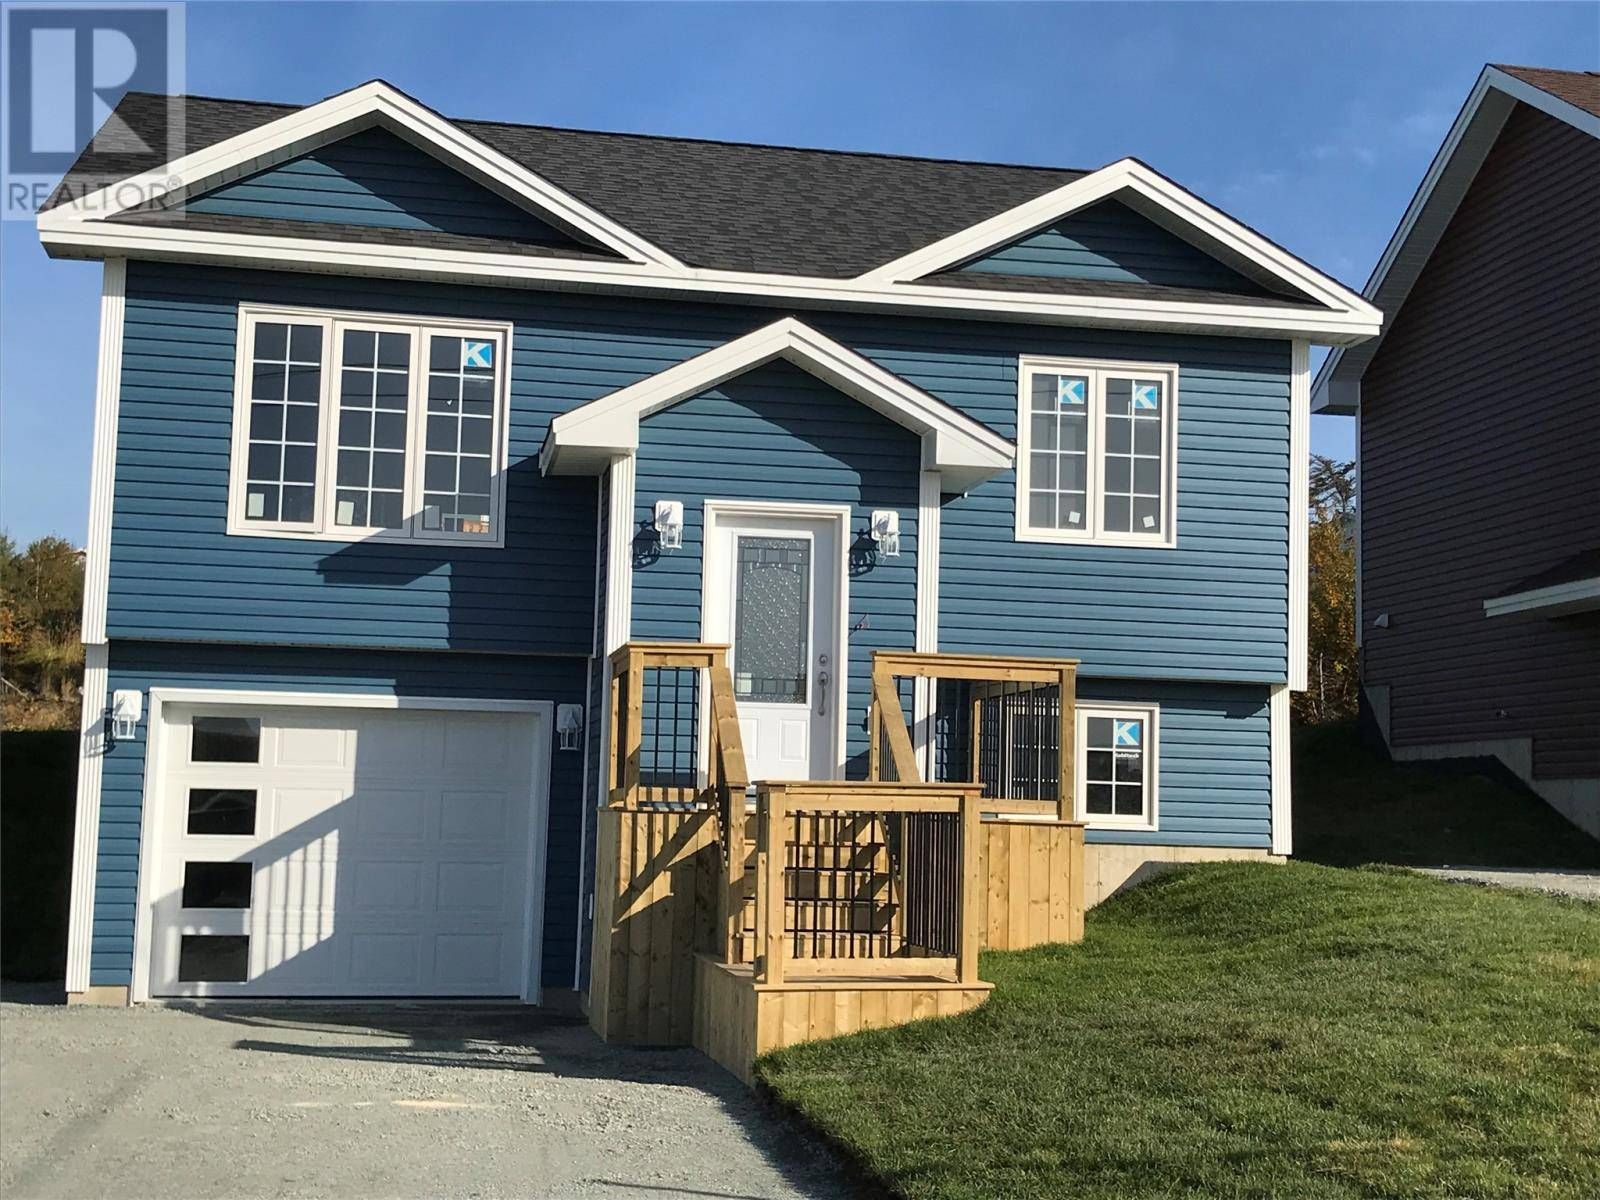 House for sale at 46 Oaken Dr Conception Bay South Newfoundland - MLS: 1196758